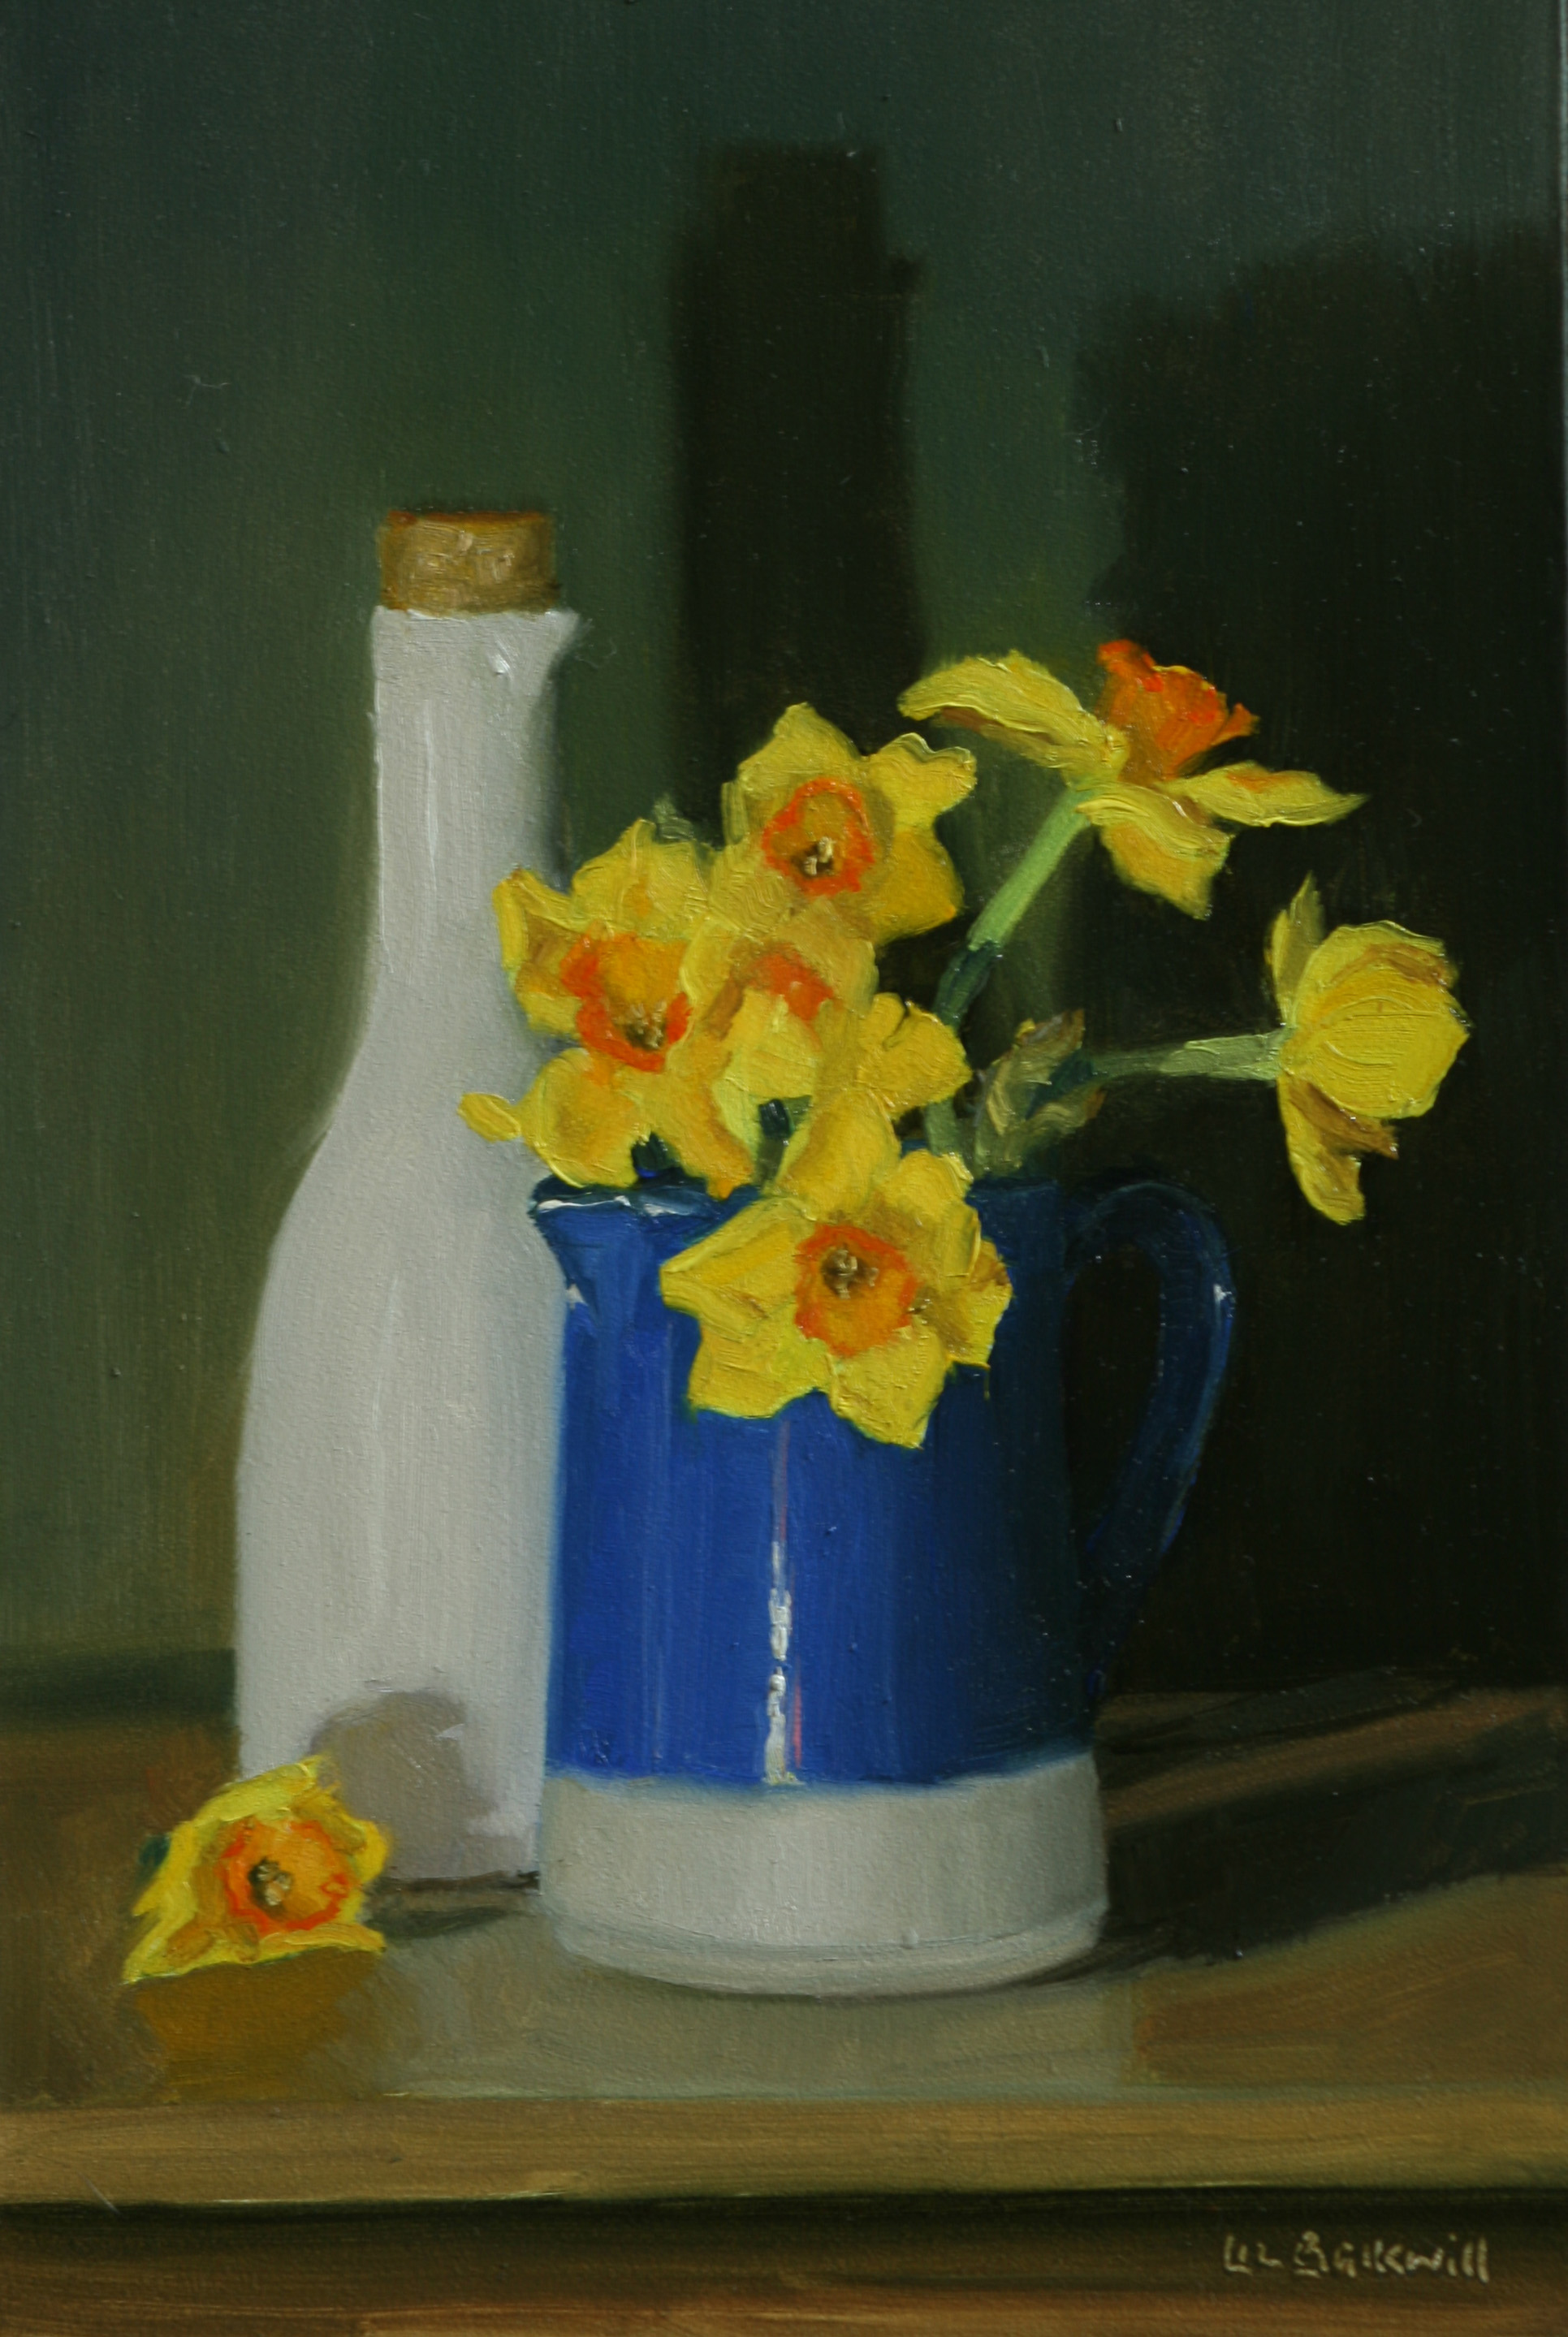 Narcissi in blue jug with white carafe